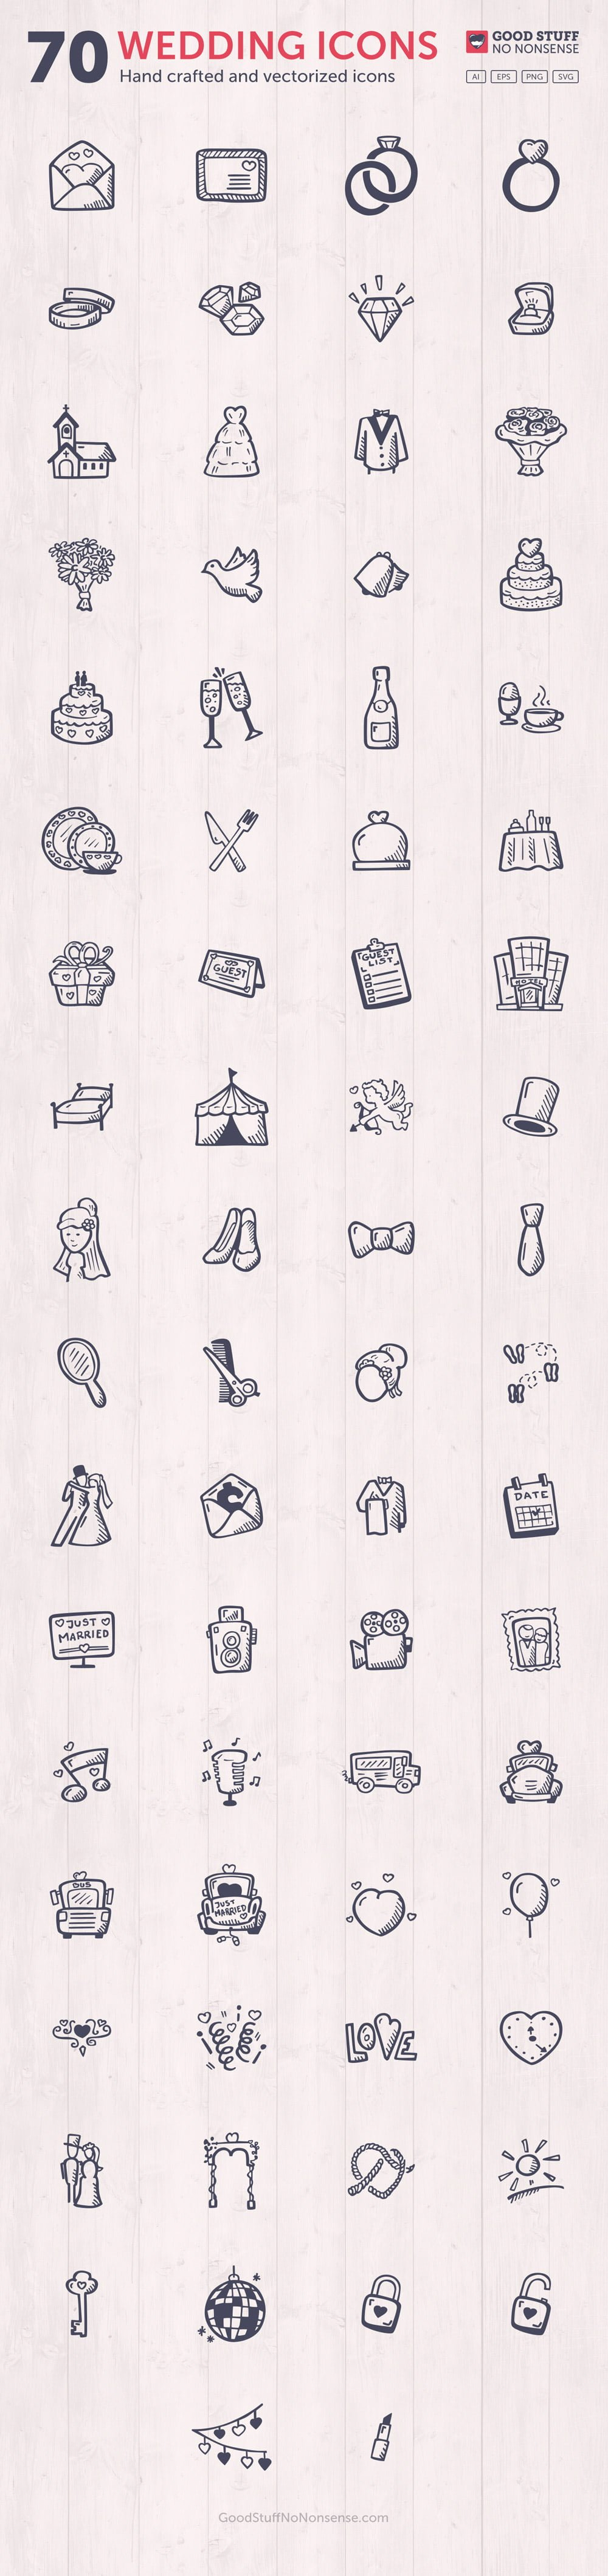 Wedding Icons Vector Premium Collection - Hand Drawn Icons